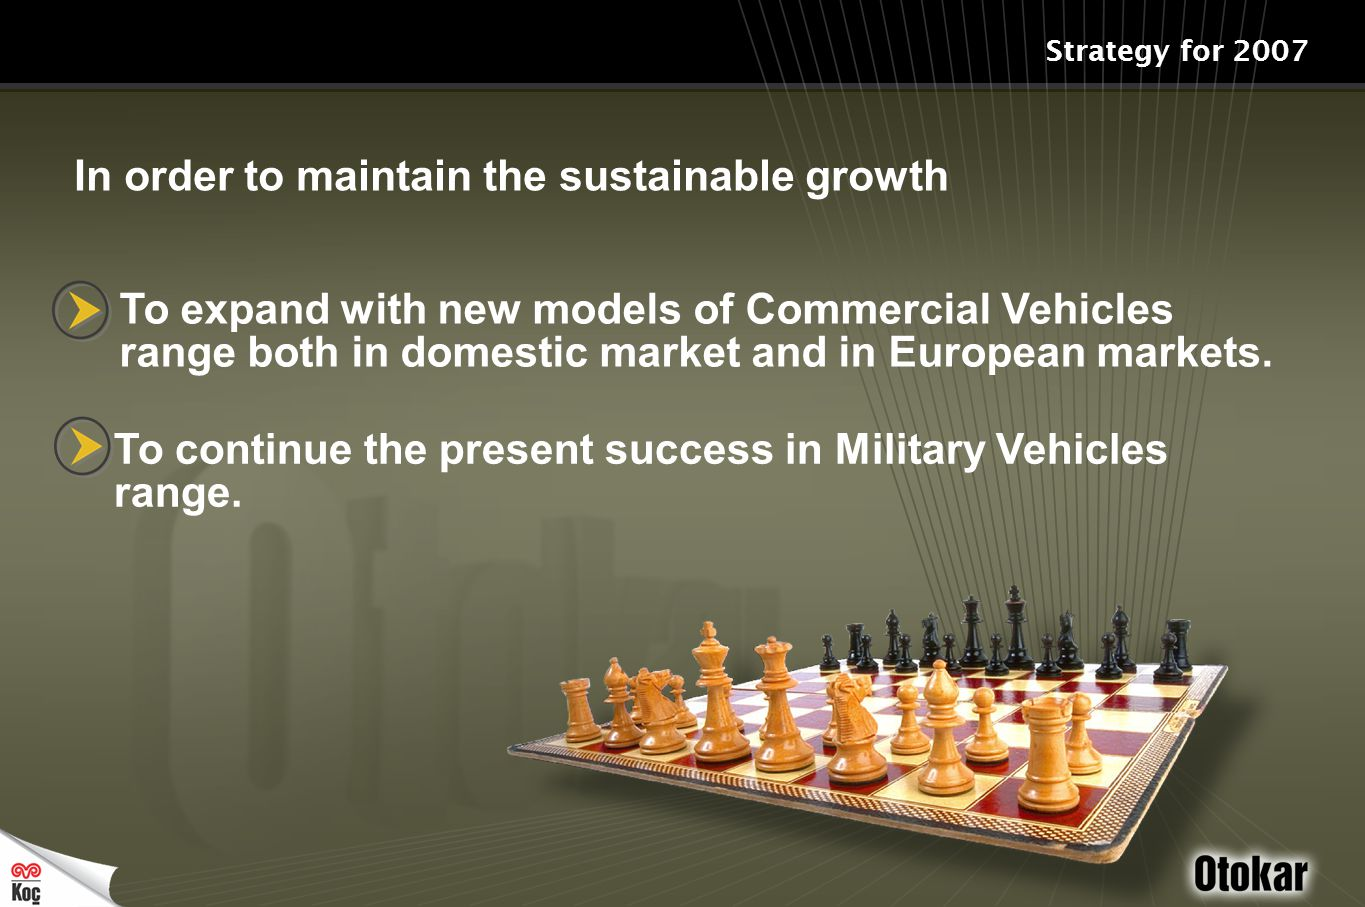 Strategy for 2007 To continue the present success in Military Vehicles range.